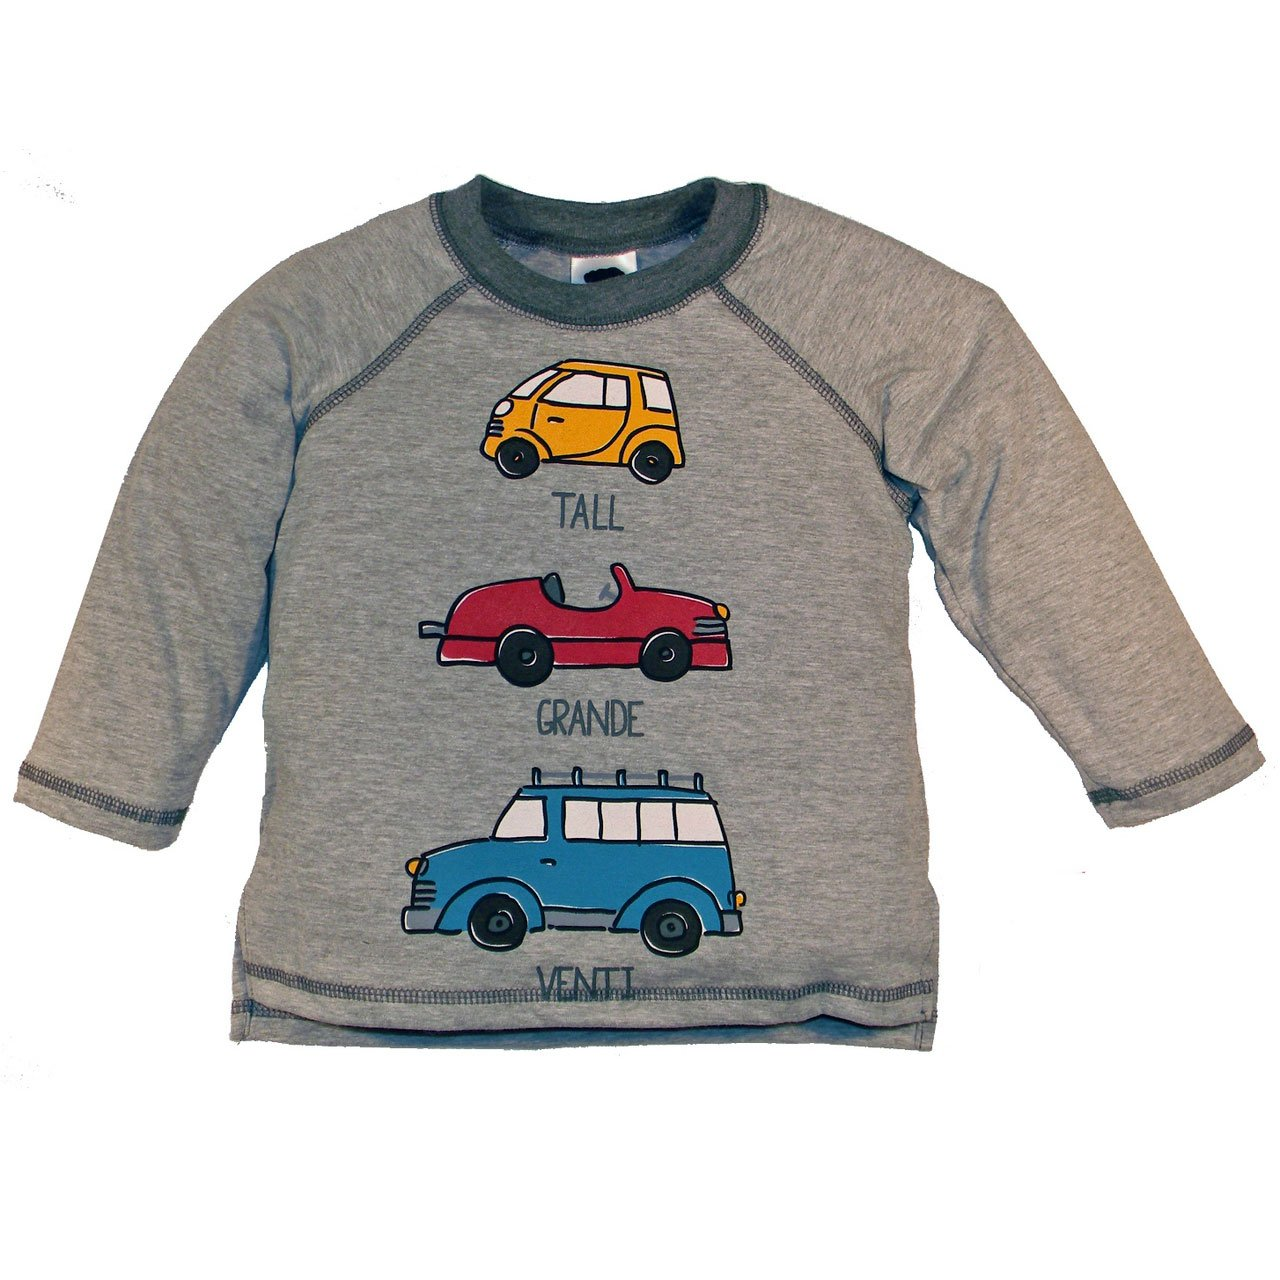 Boys' Tall, Grande, Venti Car Shirt by Mulberribush - The Boy's Store